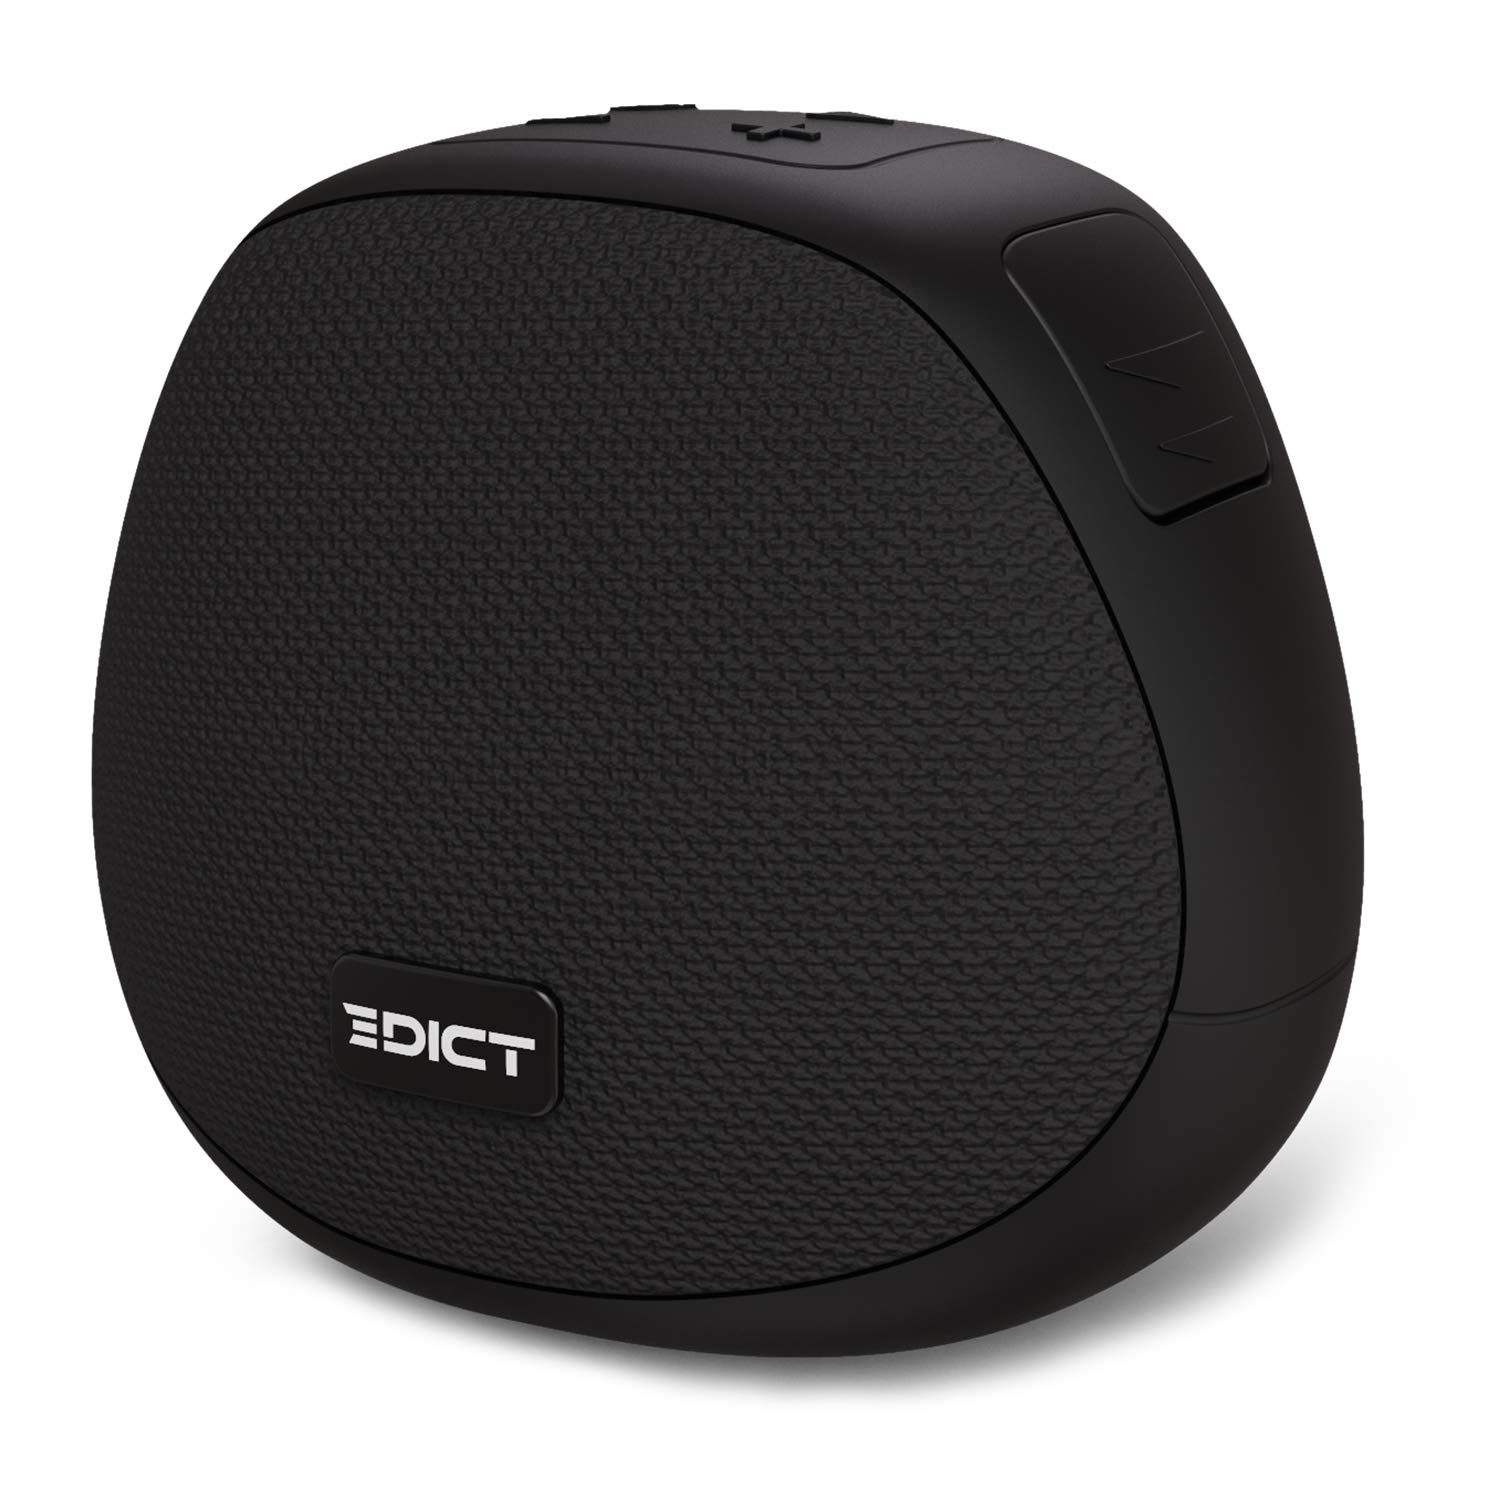 [Apply coupon] EDICT by Boat ESP01 Lightweight Portable Wireless Speaker with 5W Engaging Sound, Bluetooth V5.0, Up to 4H Playback, Built-in Mic, TWS Feature, IPX4 Water Resistance and Carry Strap(Black)